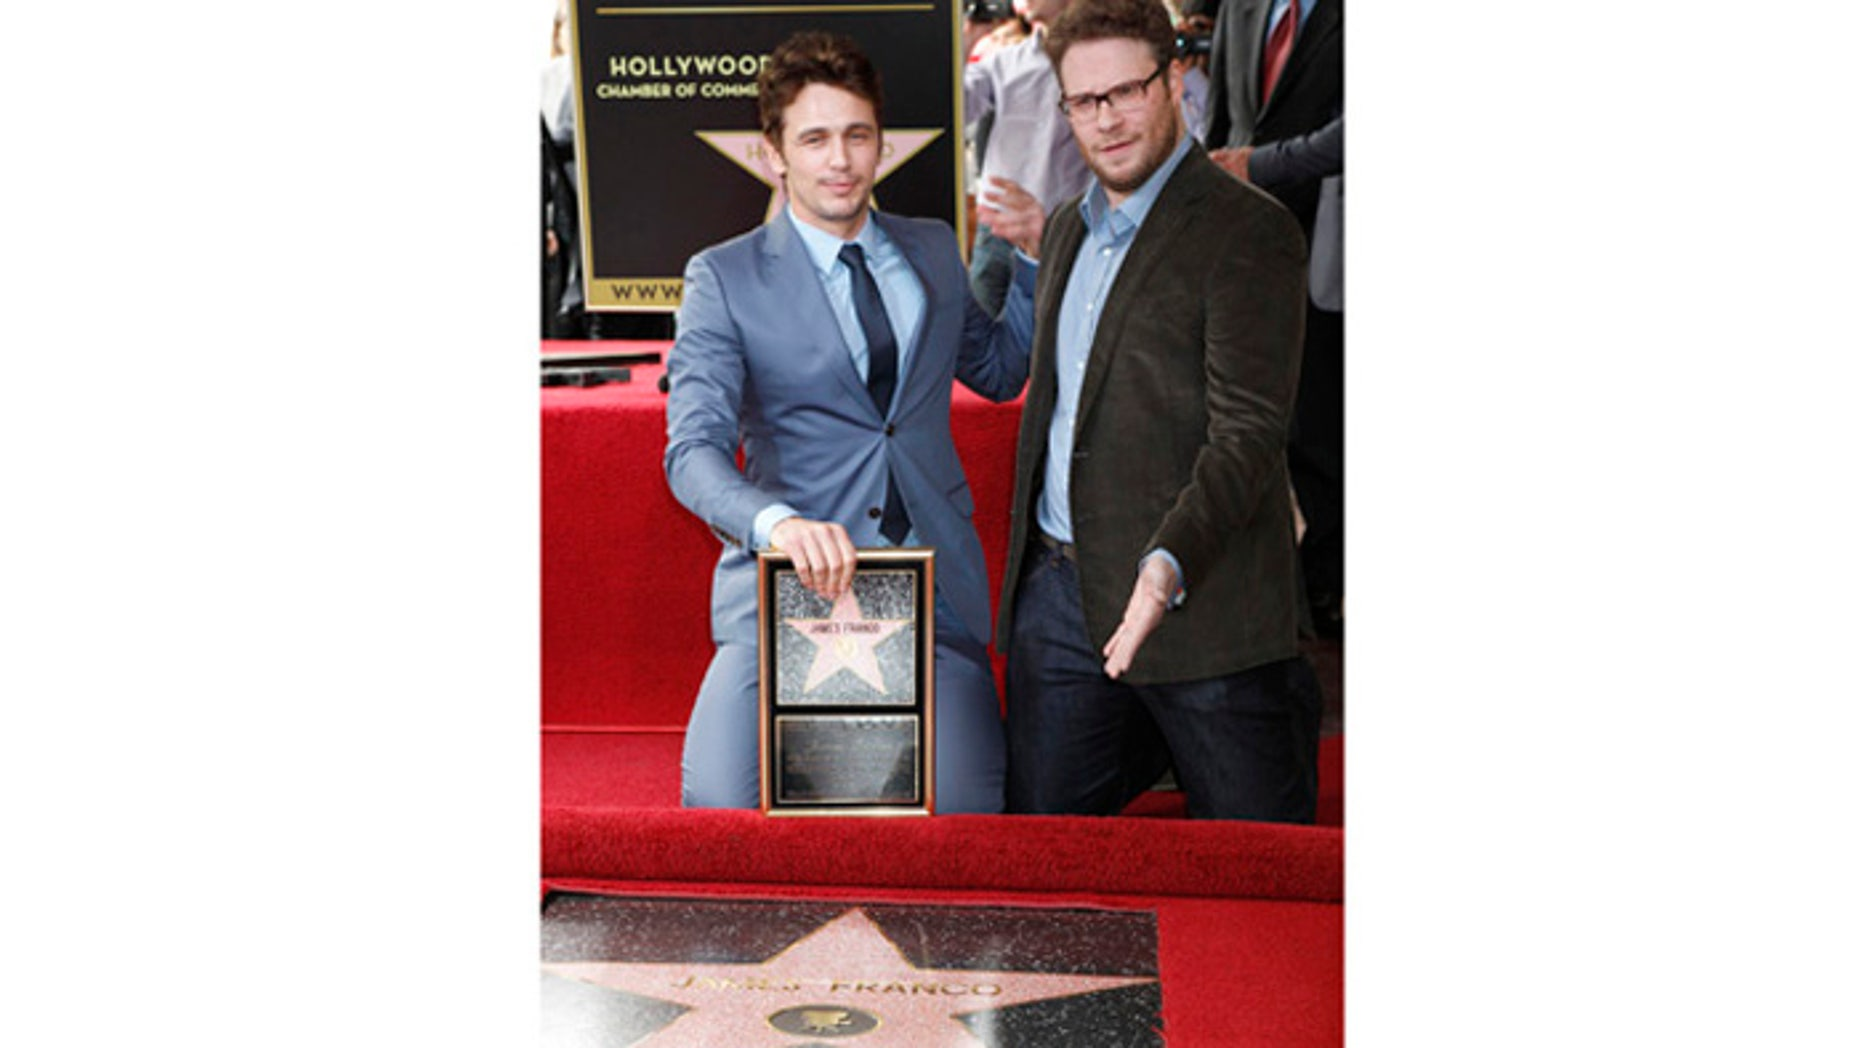 Actor James Franco (L) poses with his newly unveiled star on the Hollywood Walk of Fame, with actor Seth Rogen March 7, 2013. REUTERS/Fred Prouser (UNITED STATES - Tags: ENTERTAINMENT) - RTR3EPGG